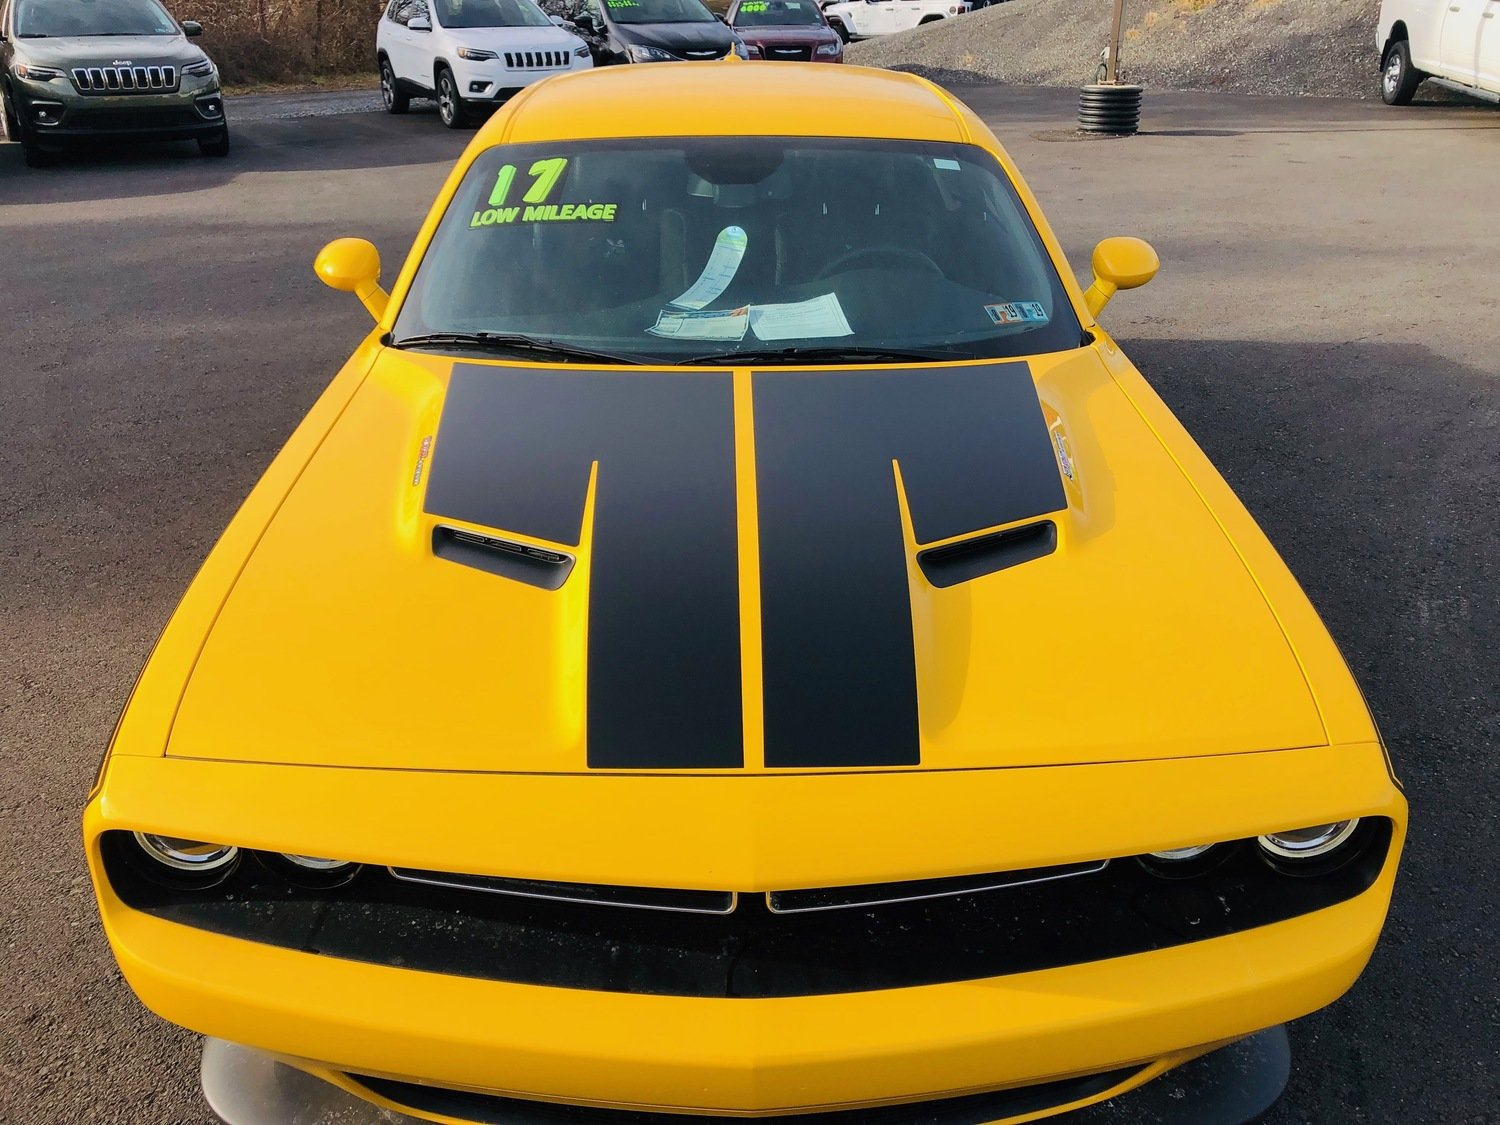 2015 - Up Dodge Challenger SXT / RT / GT AWD Split Hood Decal Kit